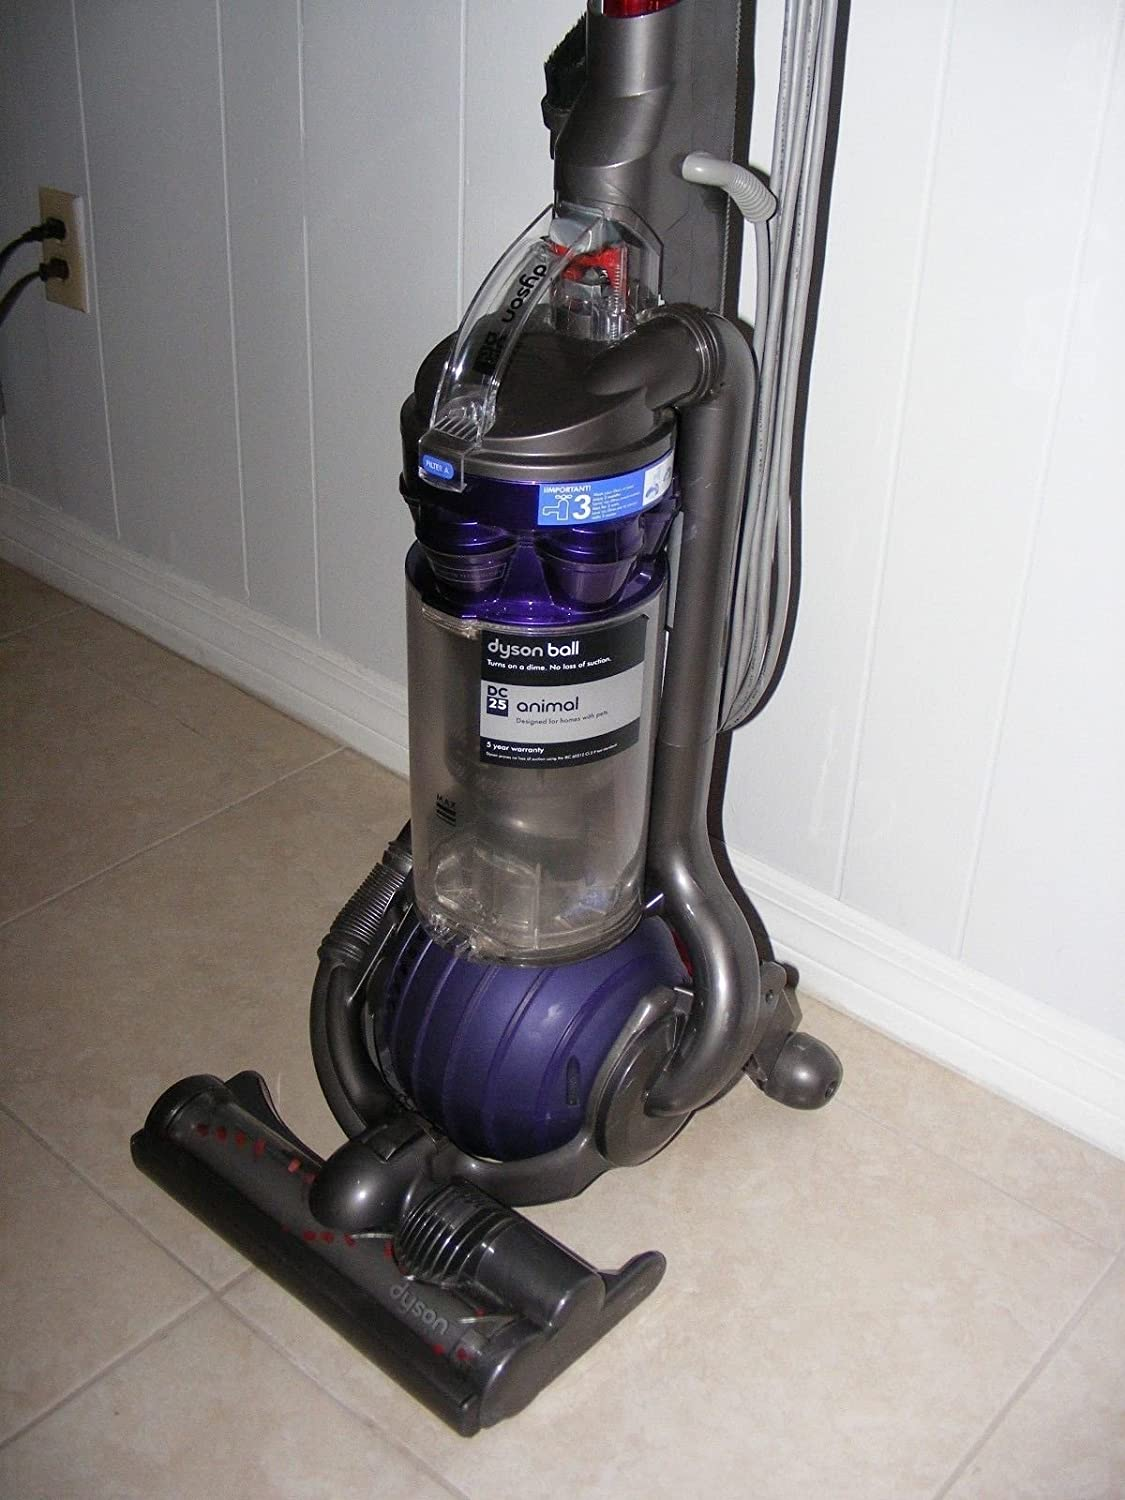 Amazon.com - Dyson DC25 Animal Ball-Technology Upright Vacuum Cleaner -  Household Upright Vacuums